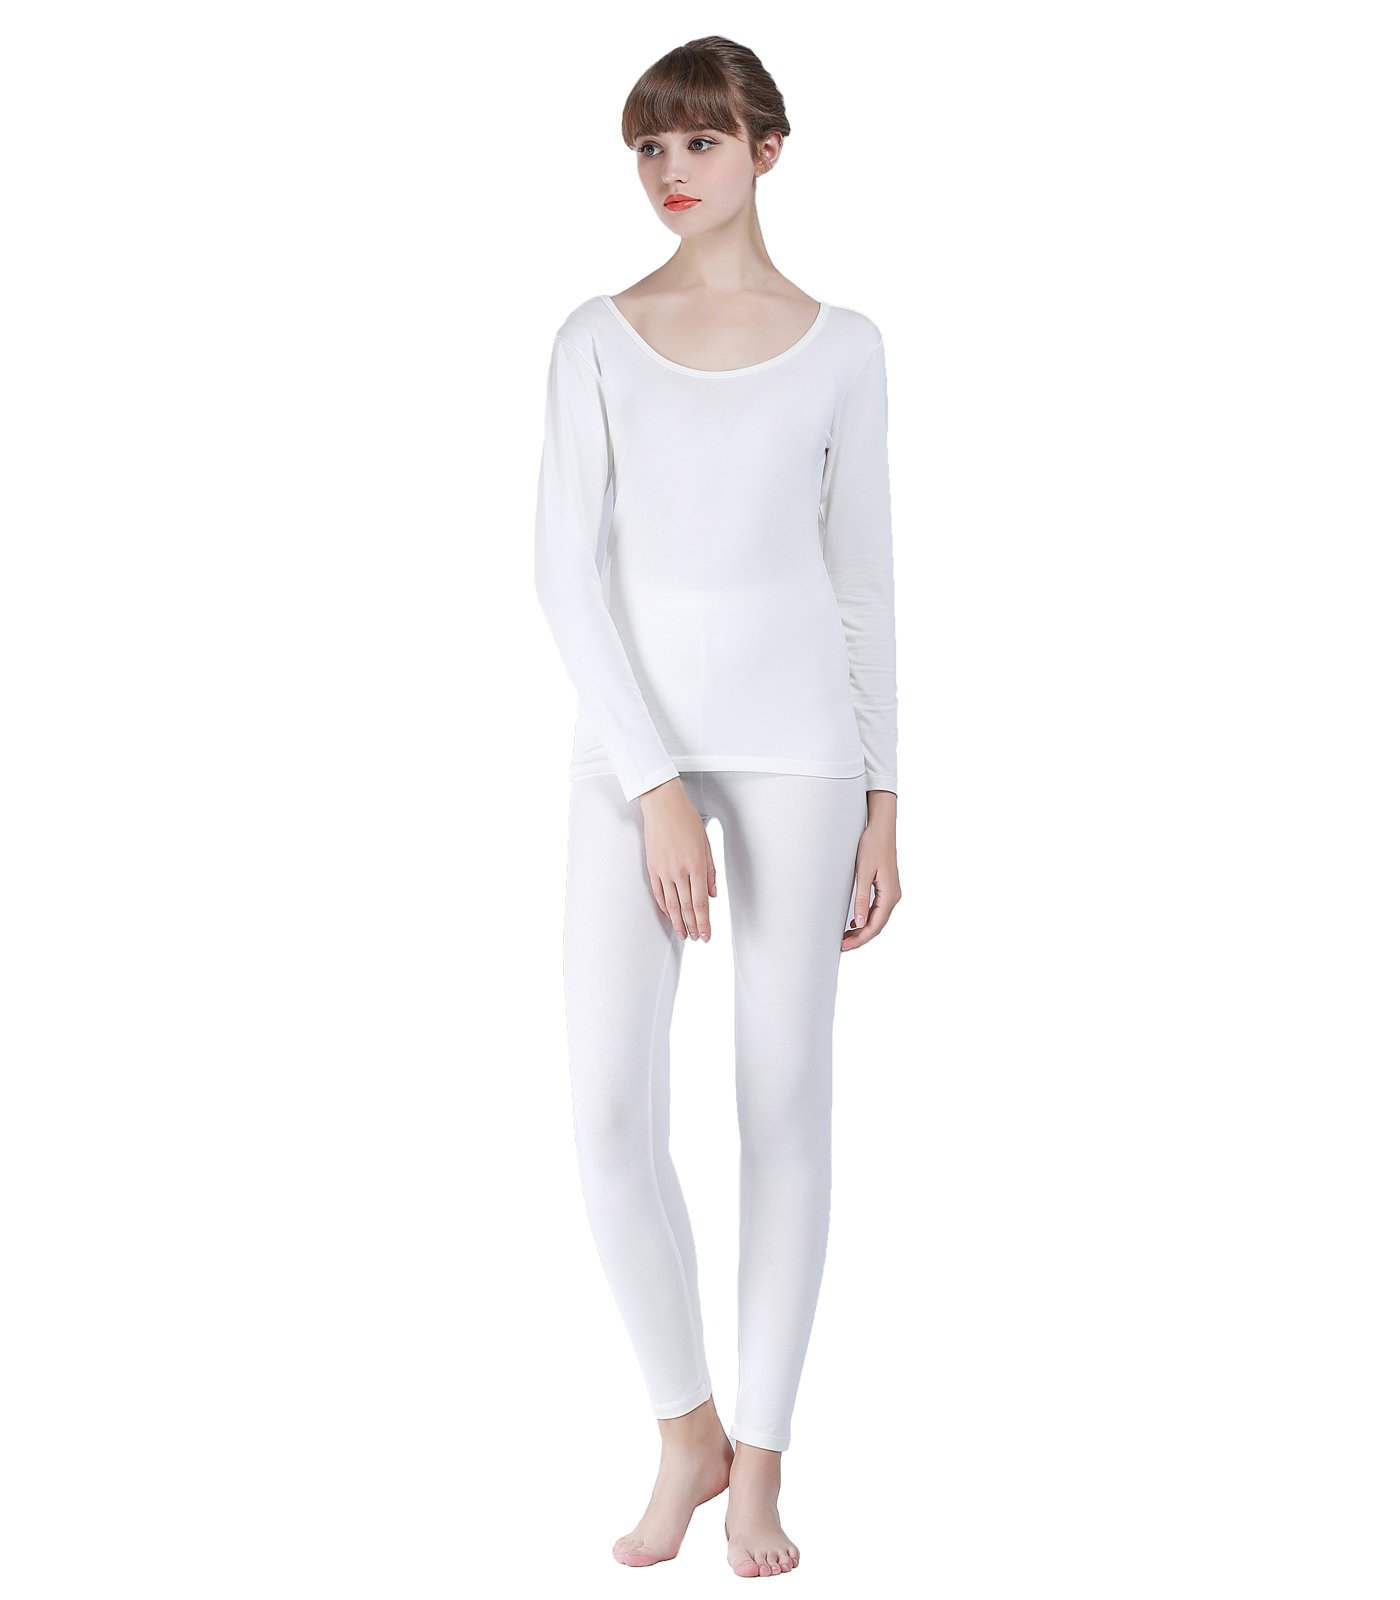 Liang Rou Women's Round Neck Thermal Long Johns Underwear Set Off-White L